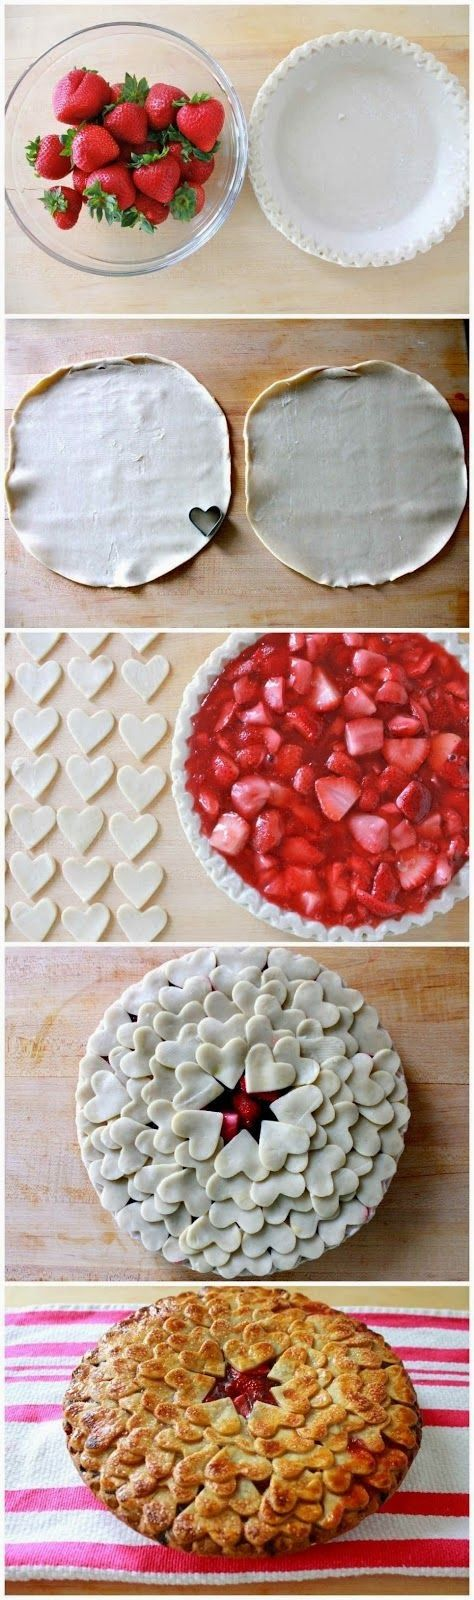 Someday I want to bake a pie.  I would top it like this!